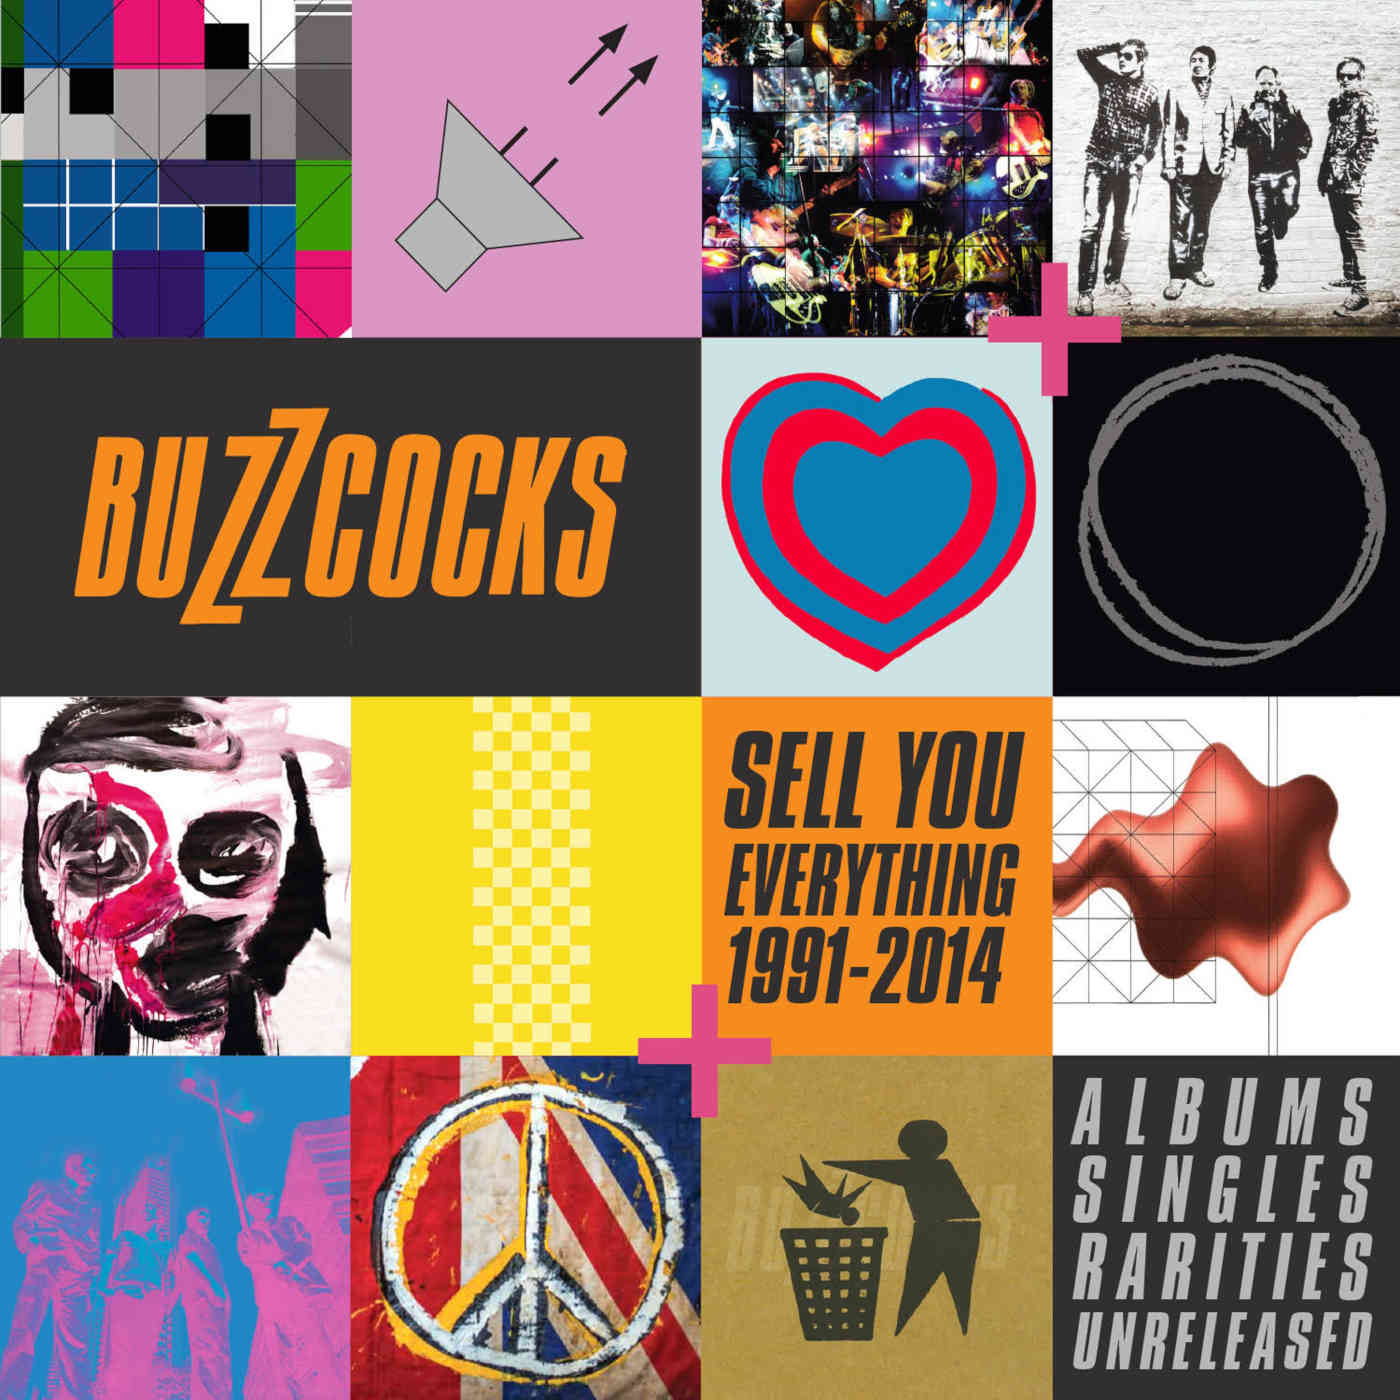 Buzzcocks: Sell You Everything (1991-2014) Albums, Singles Rarities, Unreleased, 8CD Boxset - Cherry Red Records